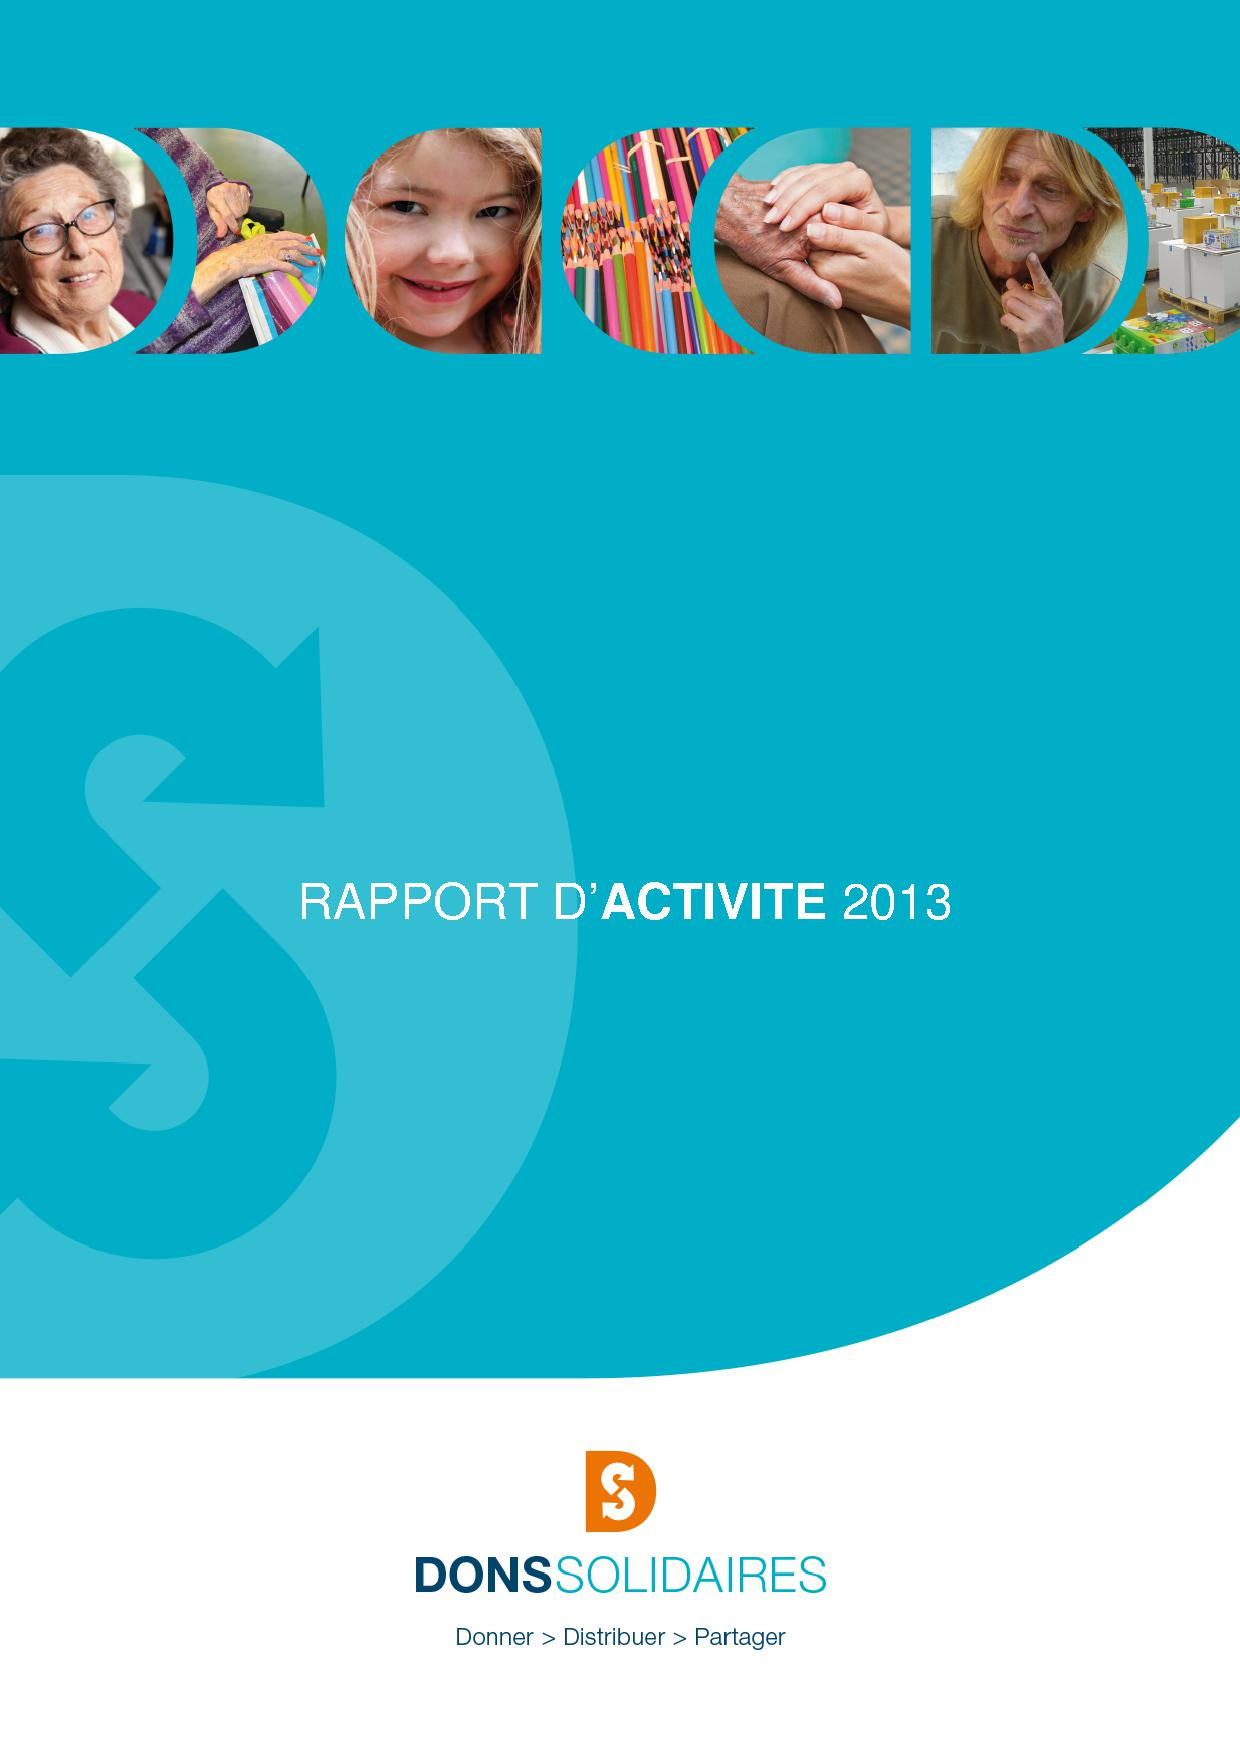 RAPPORT D'ACTIVITE 2013 - DONS SOLIDAIRES site